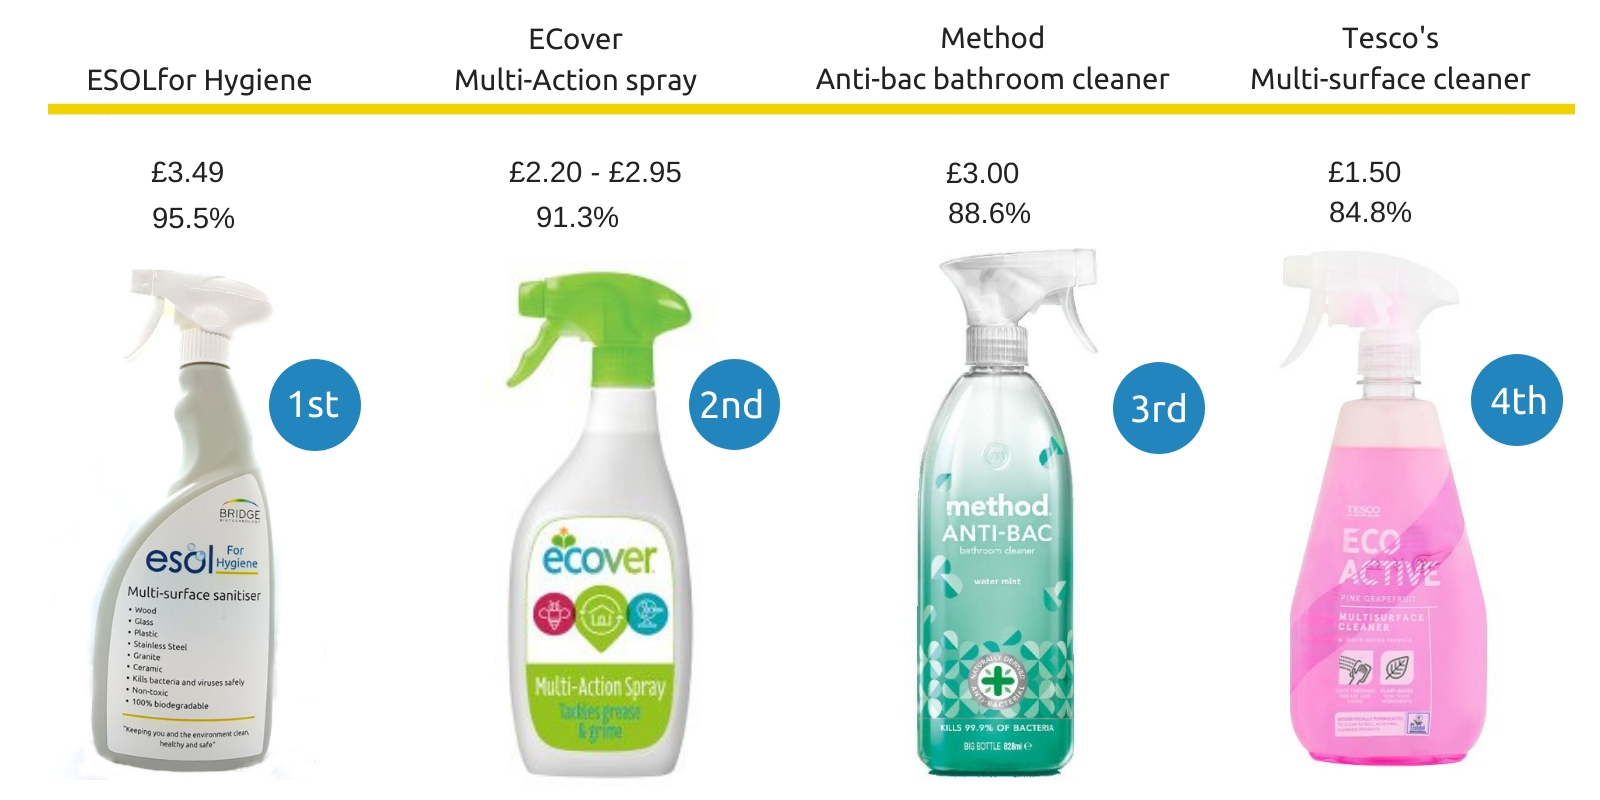 Safe cleaning alternatives for my kitchen - Method vs ECover vs Tescos vs ESOL results